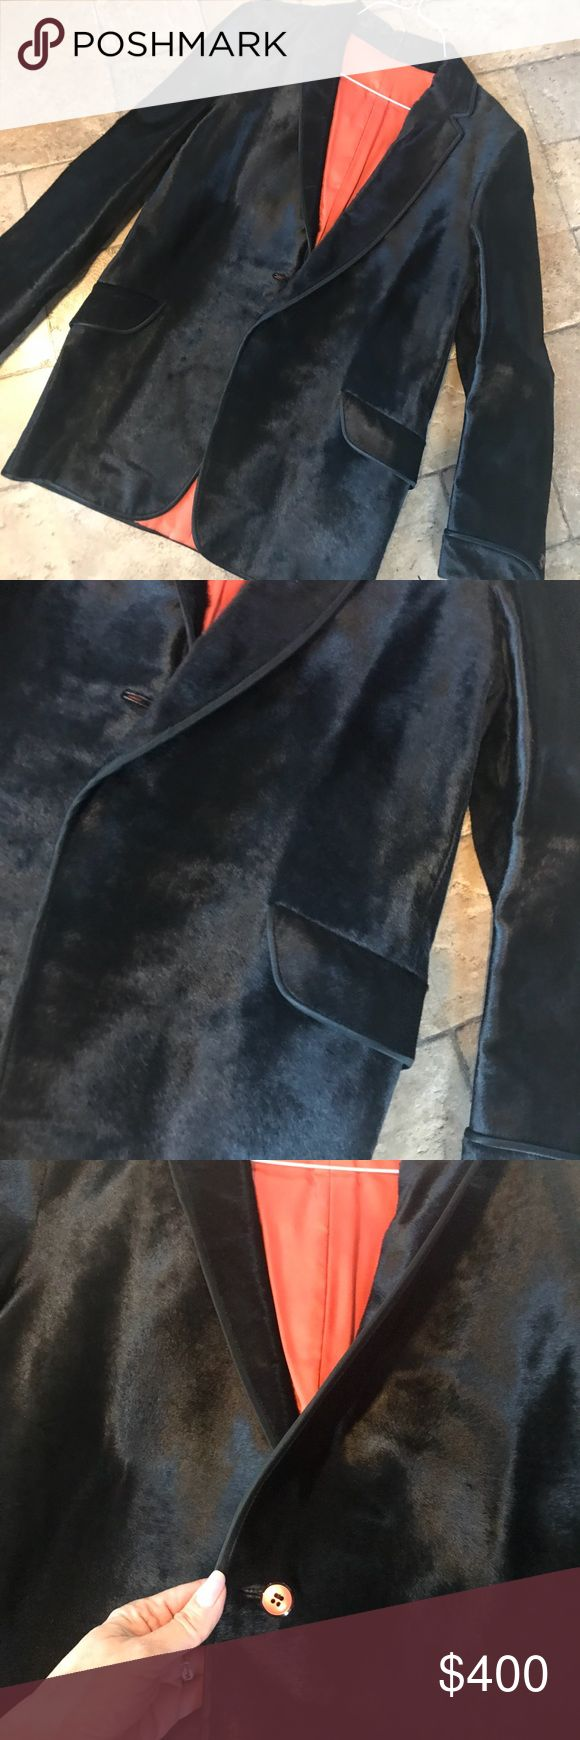 Vintage Black Fur Men's Sports Jacket Not sure of the fur Very low pile Great condition  Has been at my Grandmother's ever since I could remember. At least 40 yrs or so that I know. Tag reads auth Fur Vintage Jackets & Coats